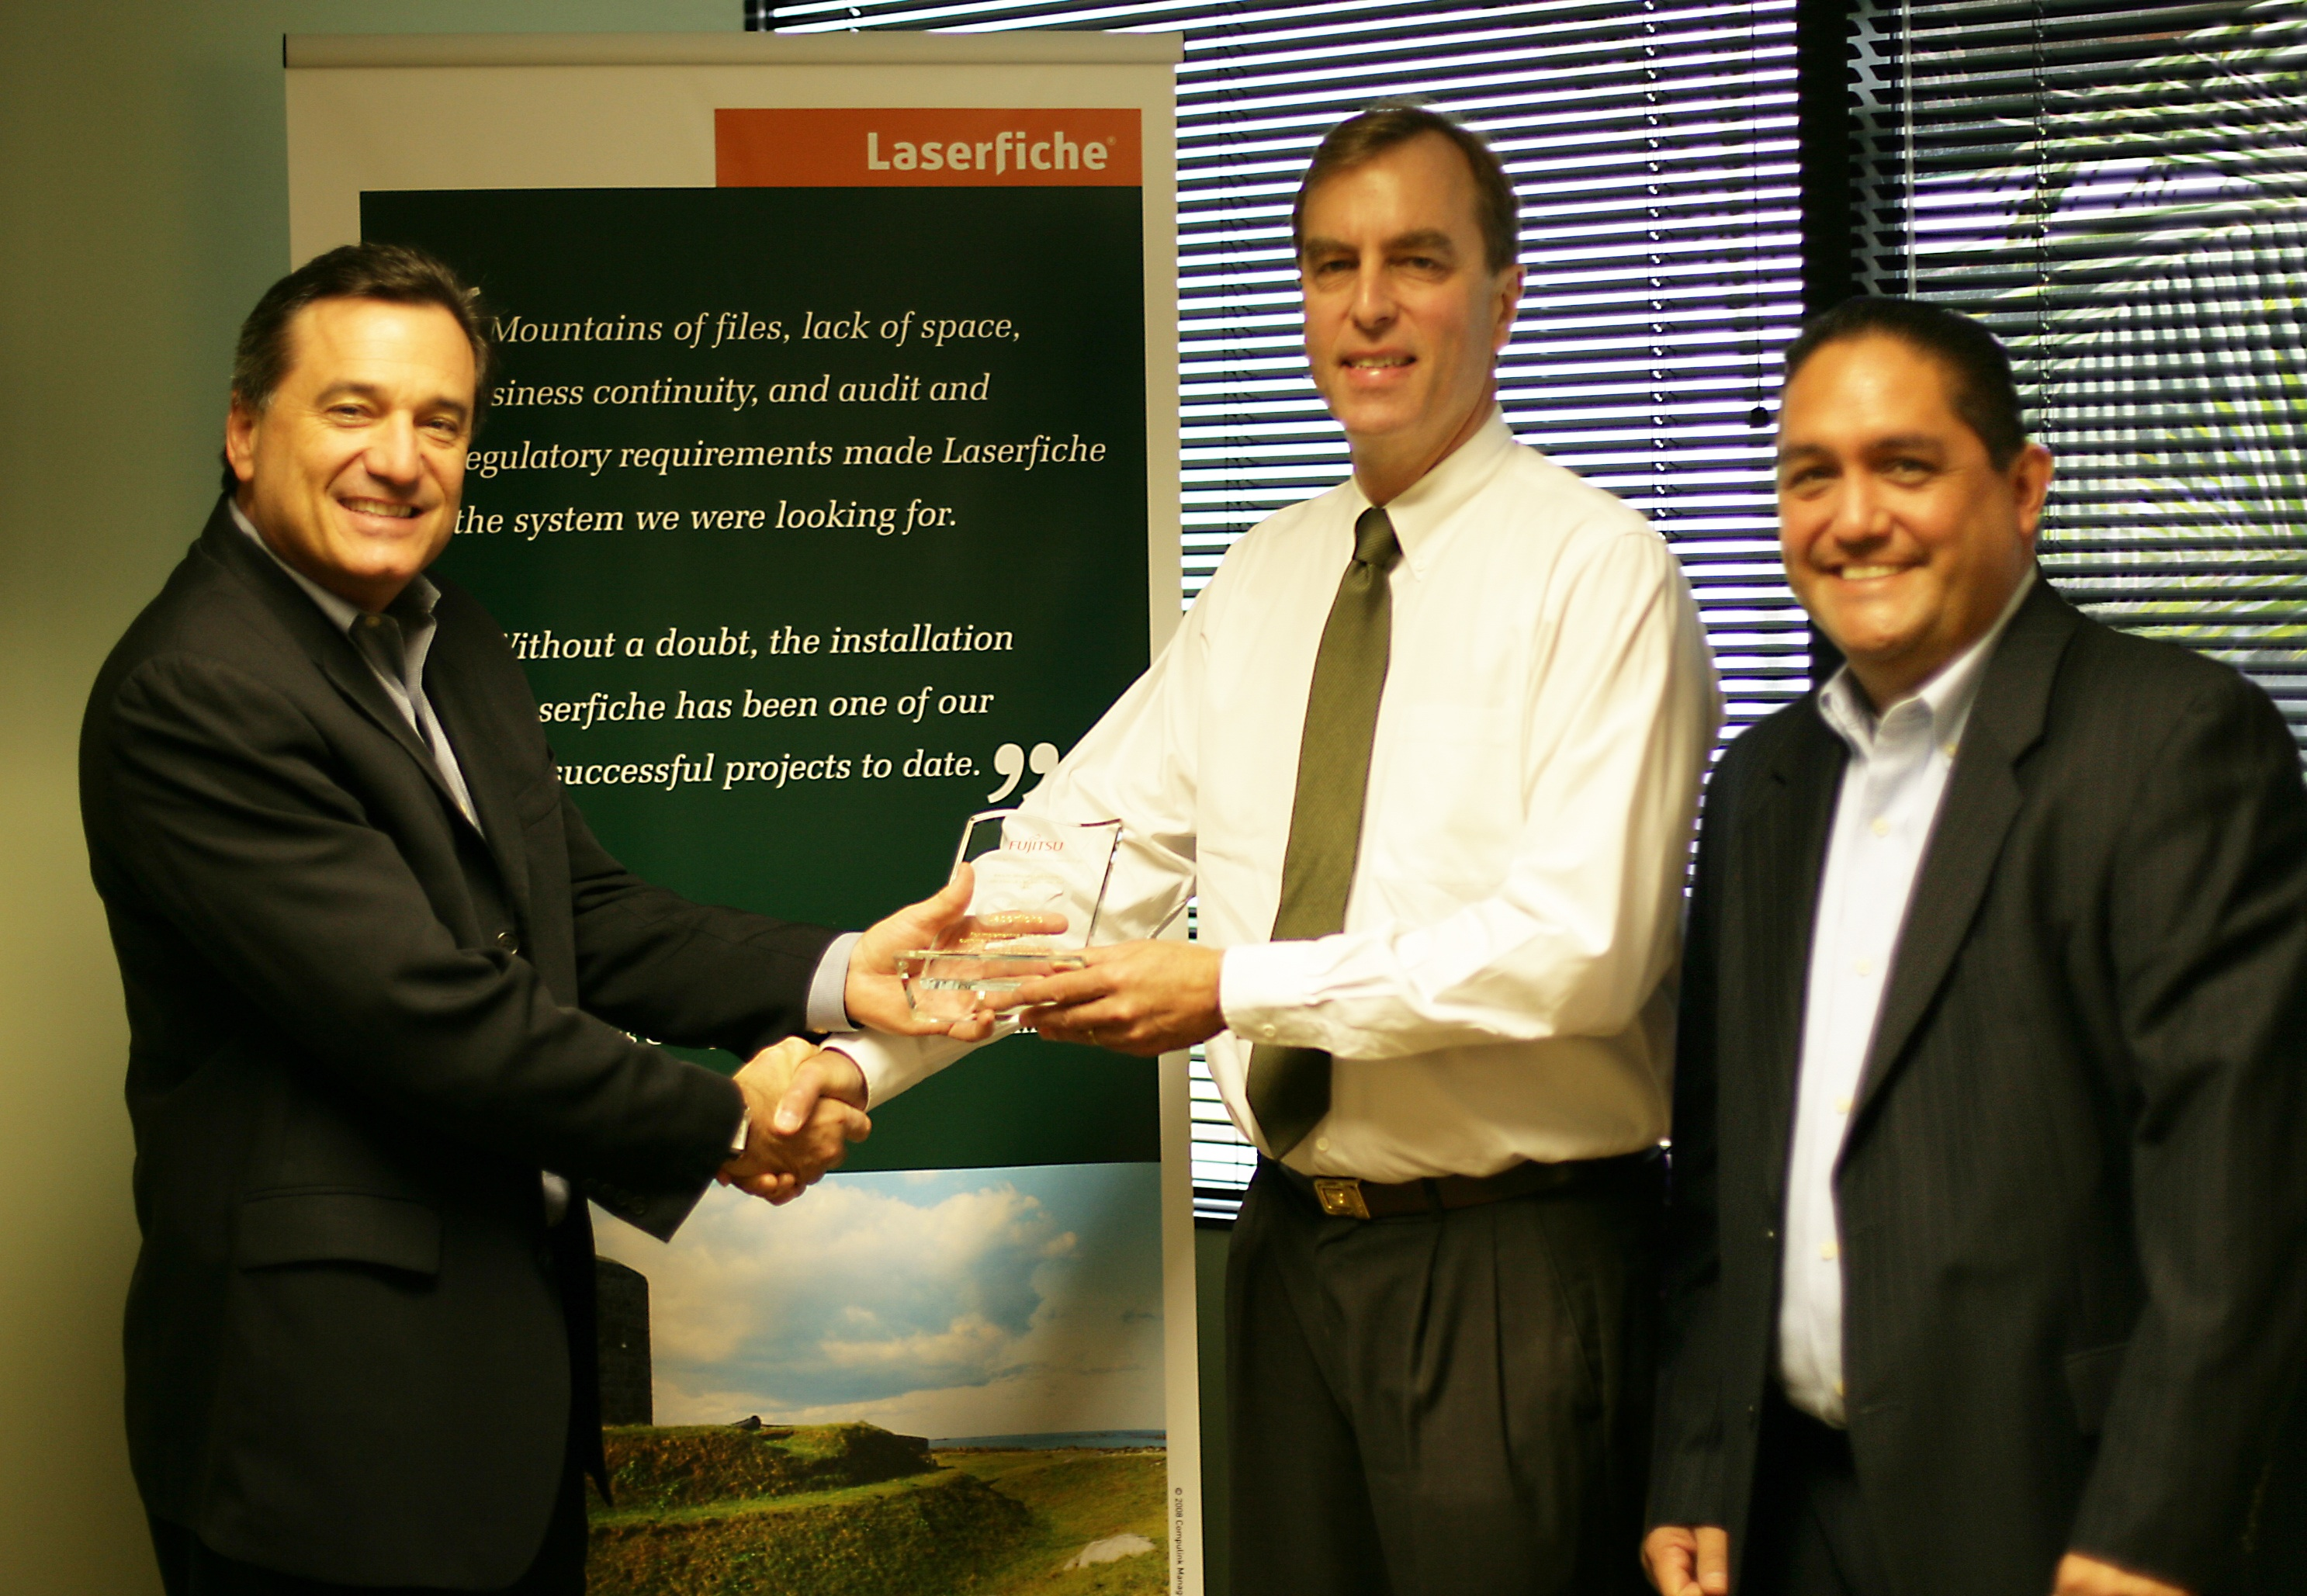 Doug Rudolph, VP, Product Management and Business Development, Fujitsu Computer Products of America, Inc. (left) and Robert Esquivel, Jr., CDIA+, ISV Business Development Manager, Western Region Fujitsu Imaging Products Group (right) present Chris Wacker, Laserfiche Senior Vice President Business Development (center) with Fujitsu's Independent Software Vendor Innovative Award.